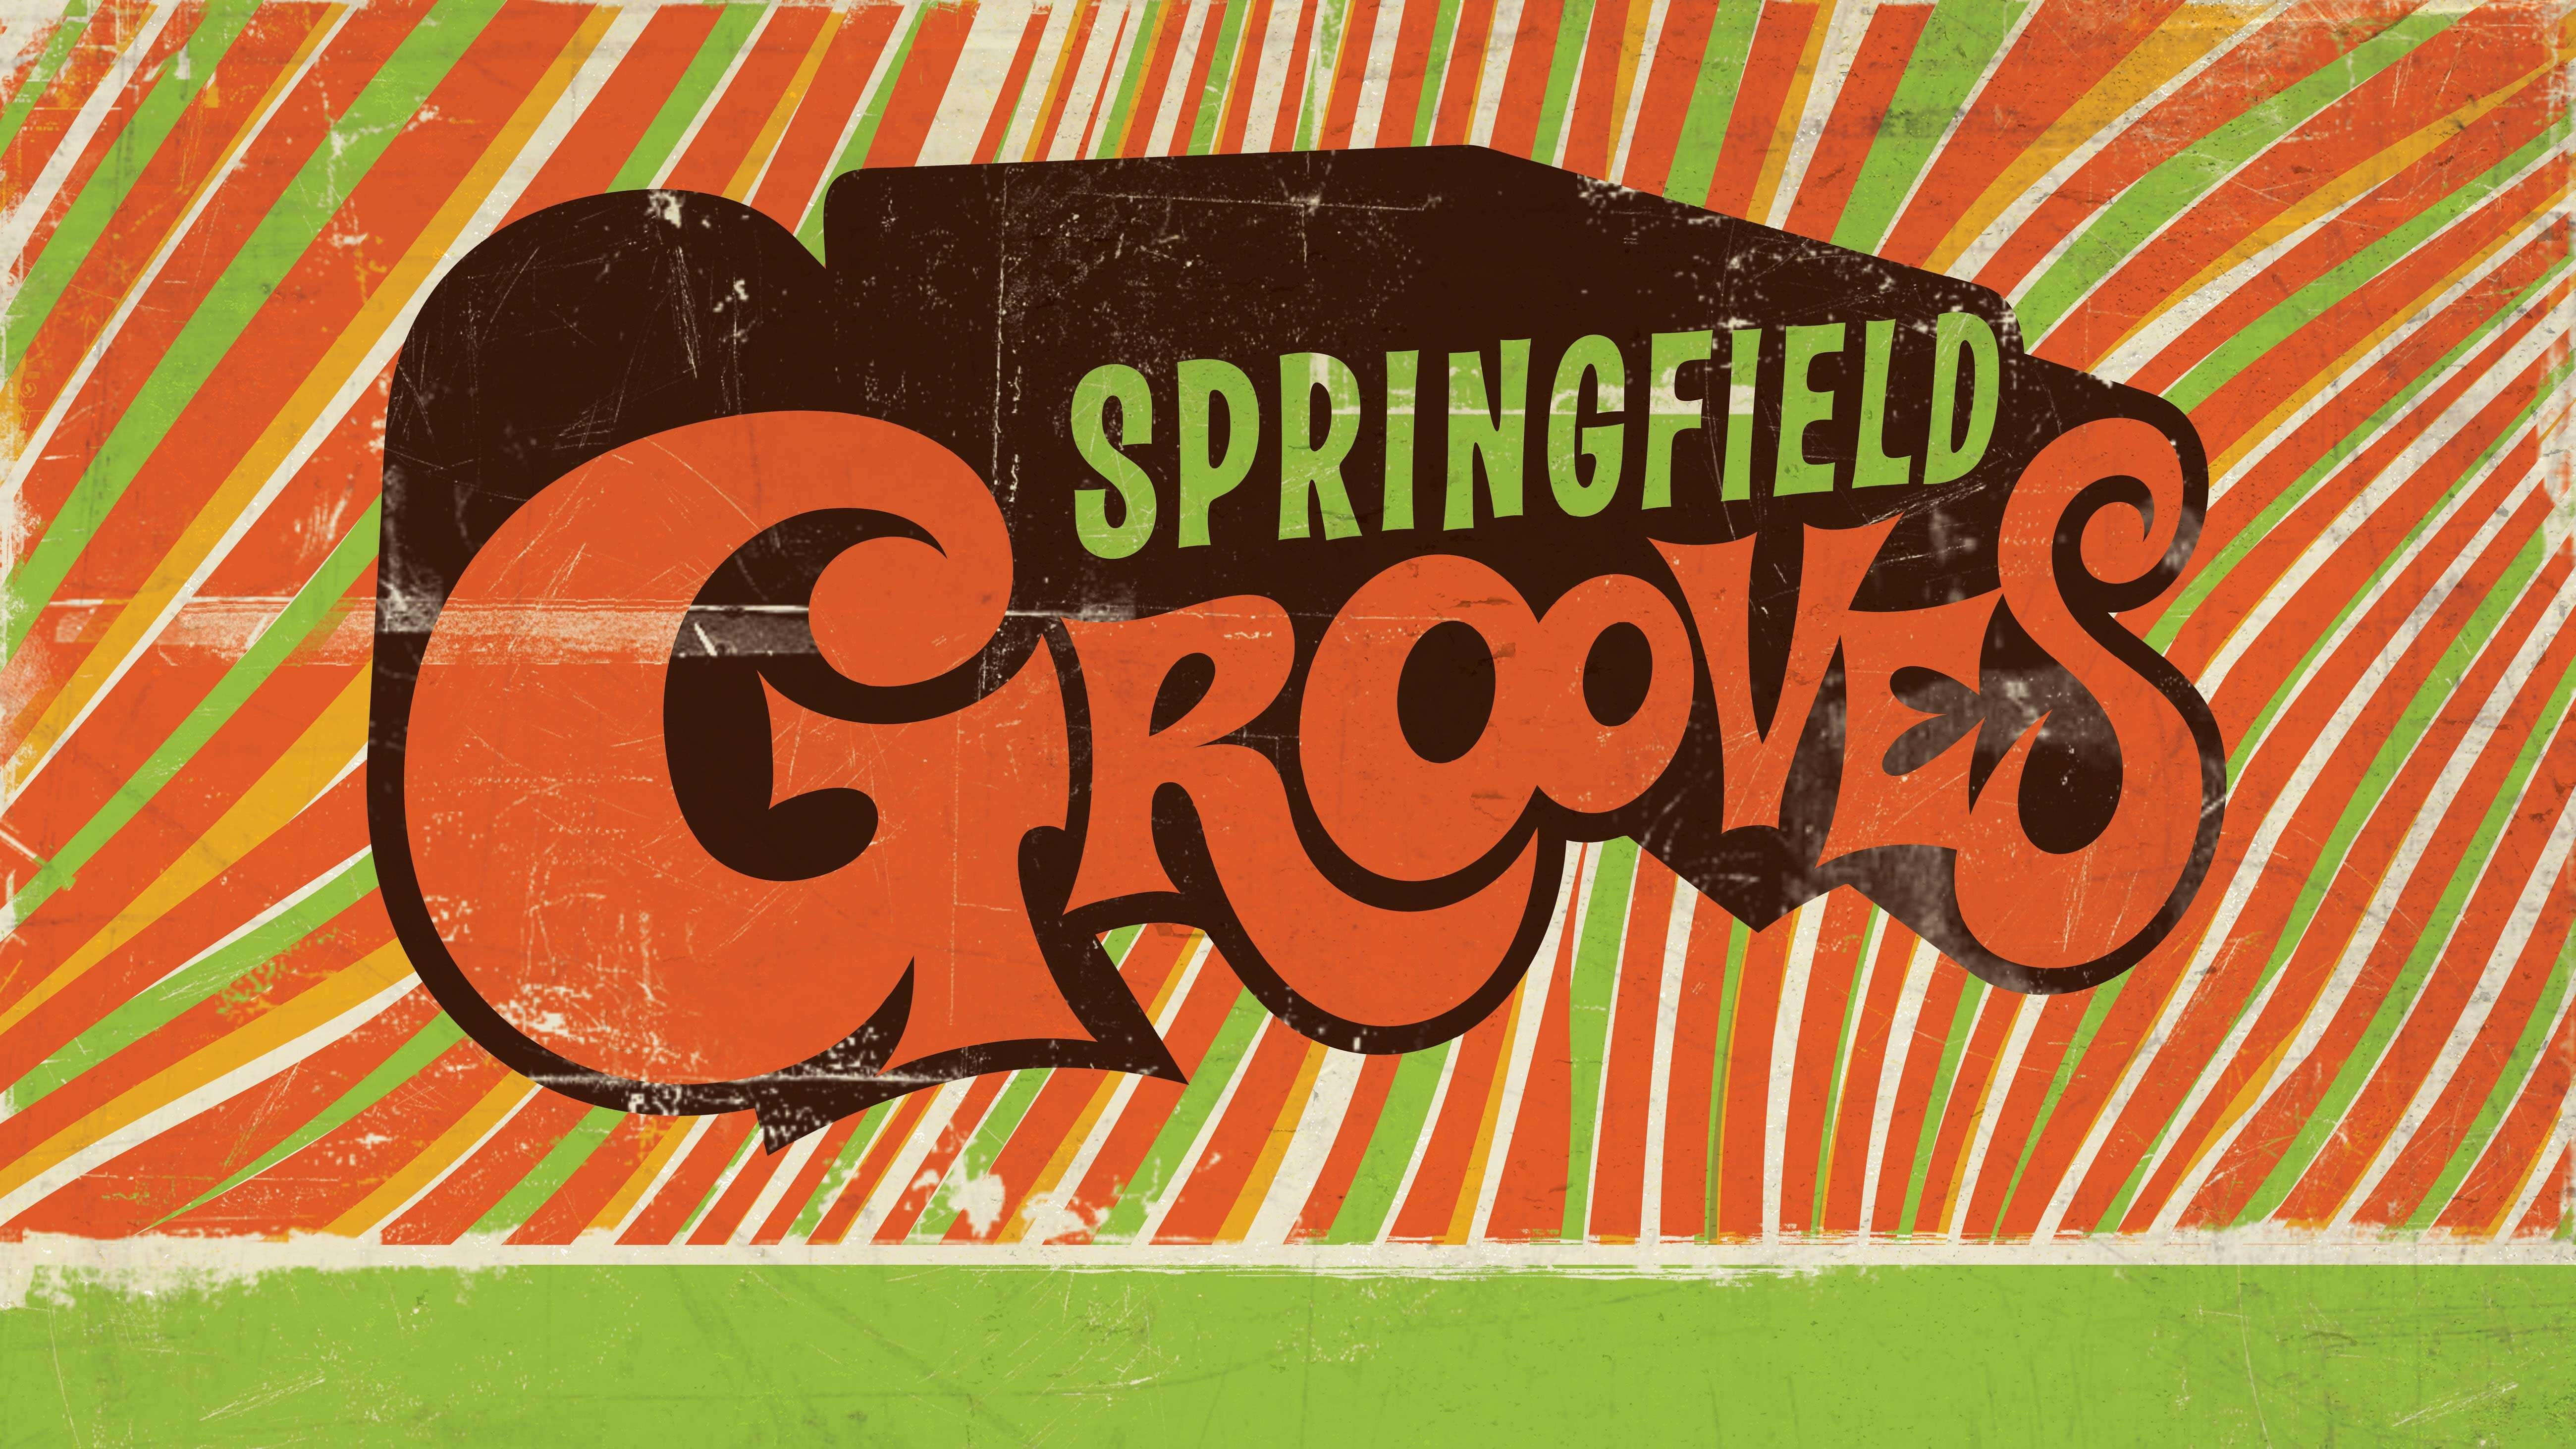 Springfield Convention & Visitors Bureau | Springfield Grooves